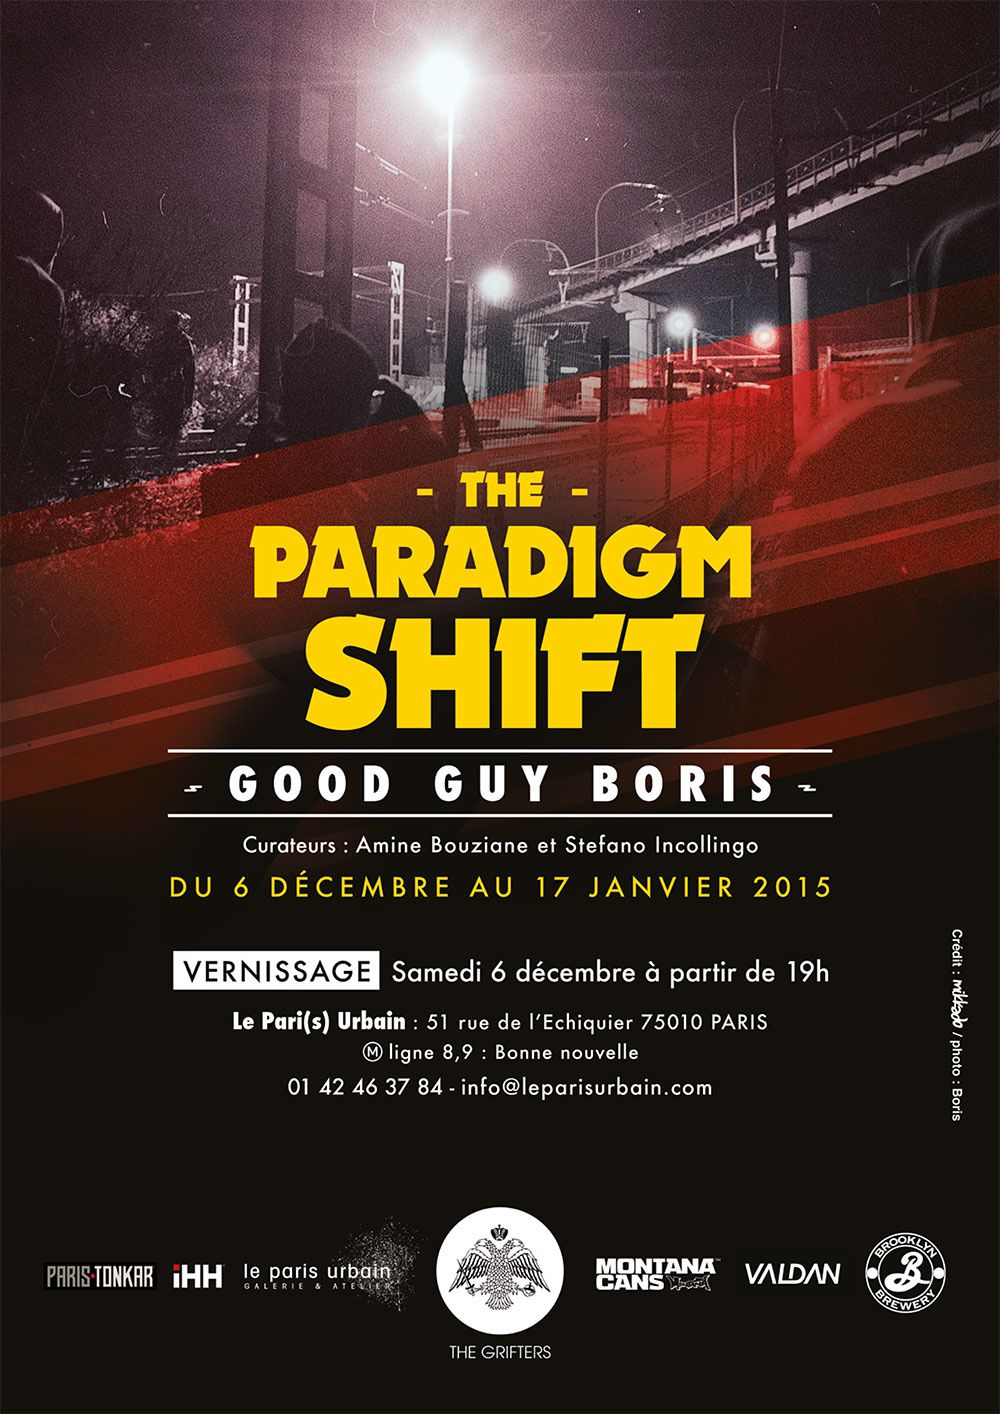 Good Guy Boris - The Paradigm Shift